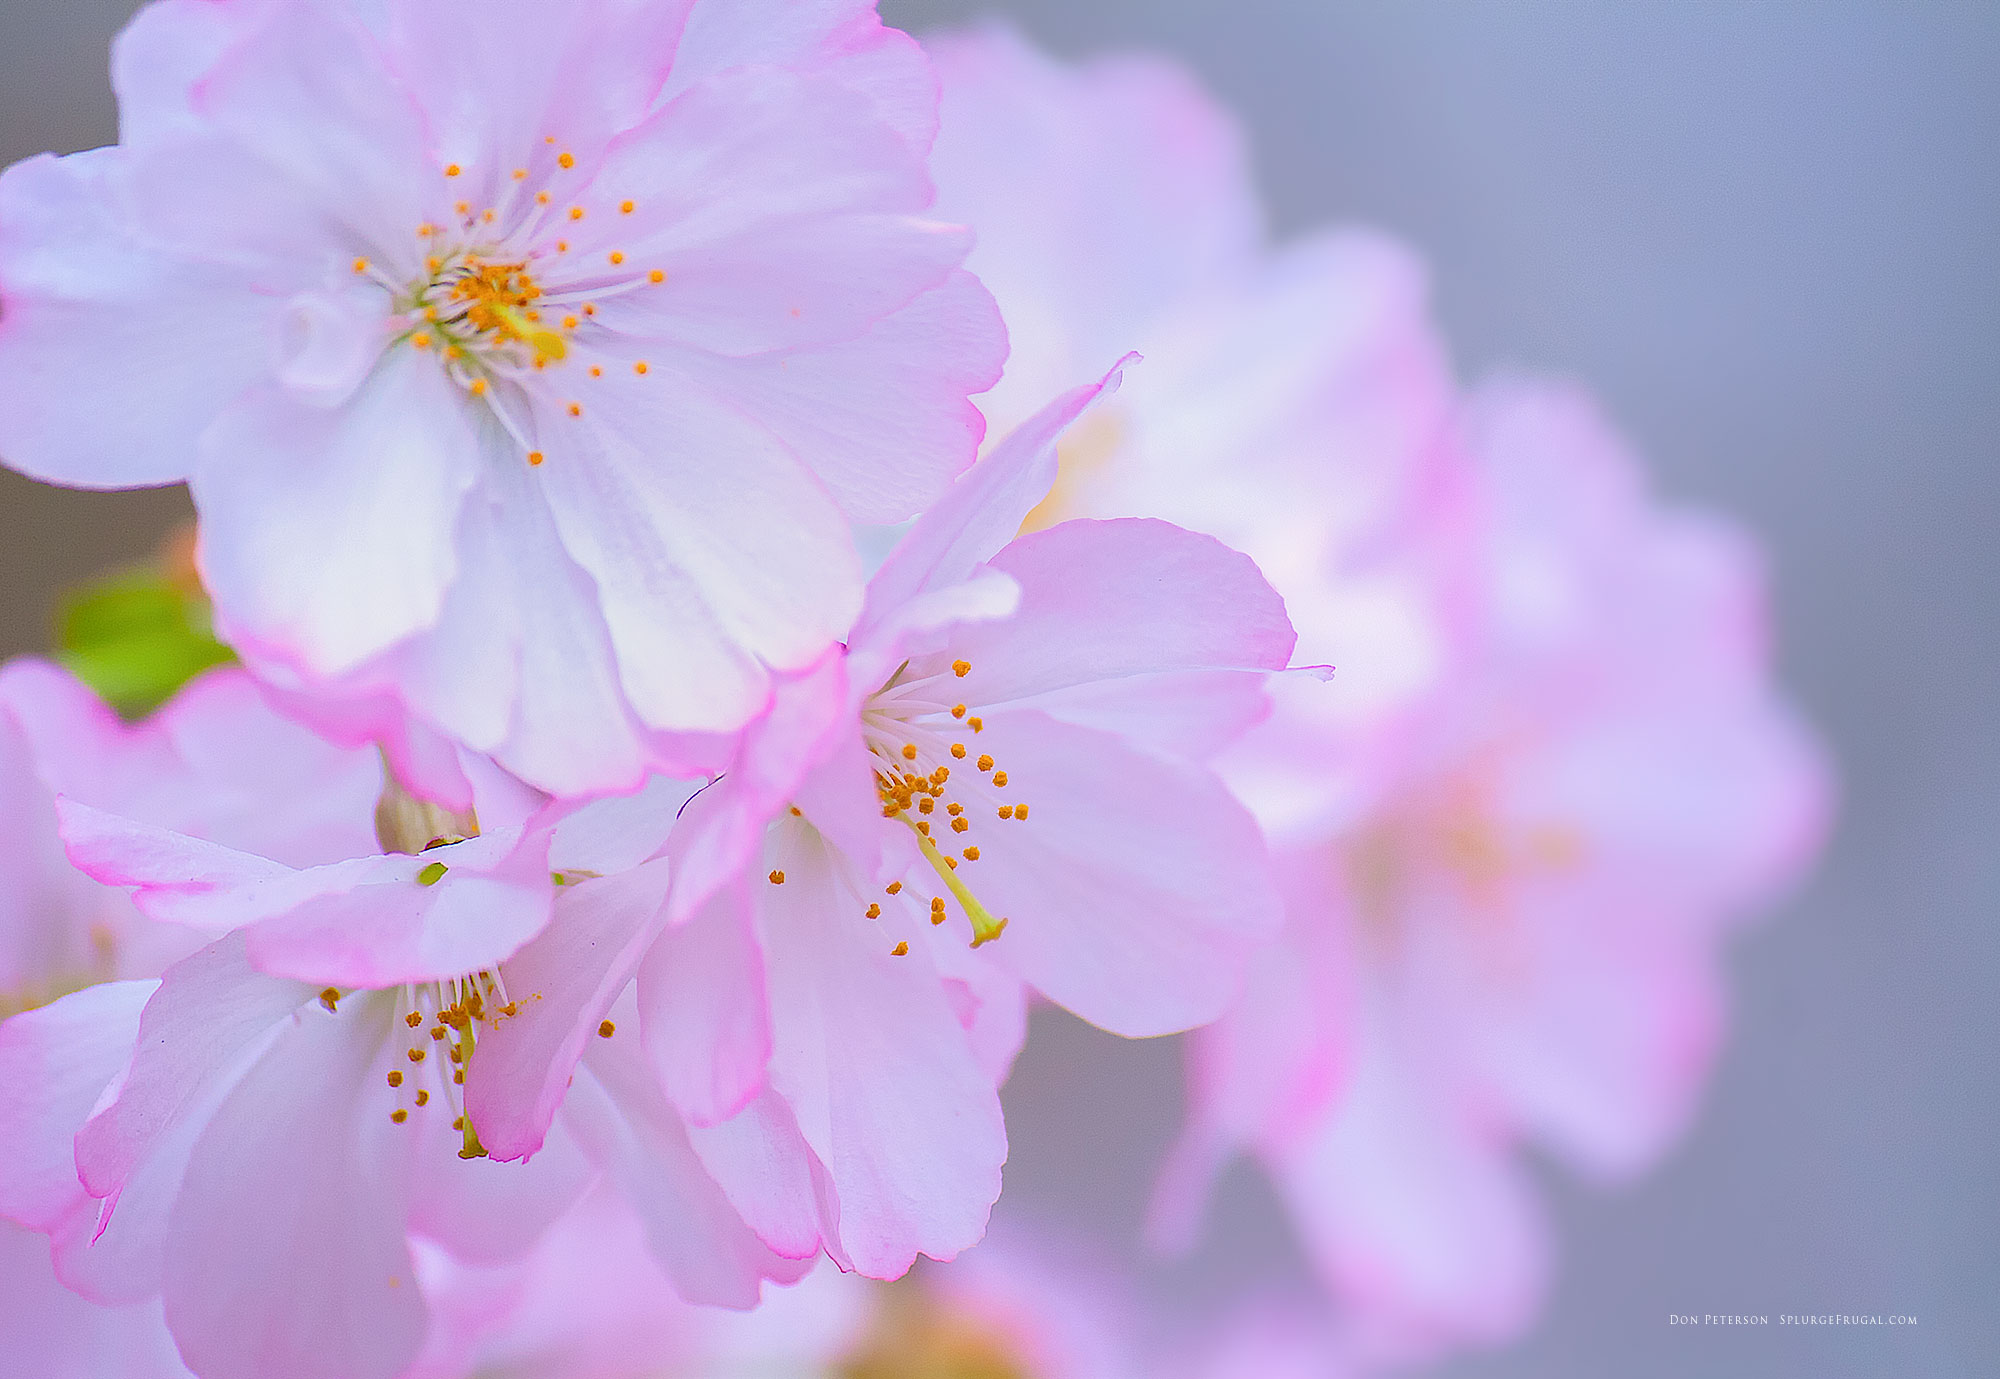 Wallpapers Cherry Blossom Free Cherry Blossom Wallpapers Branch Brook Park Splurgefrugal